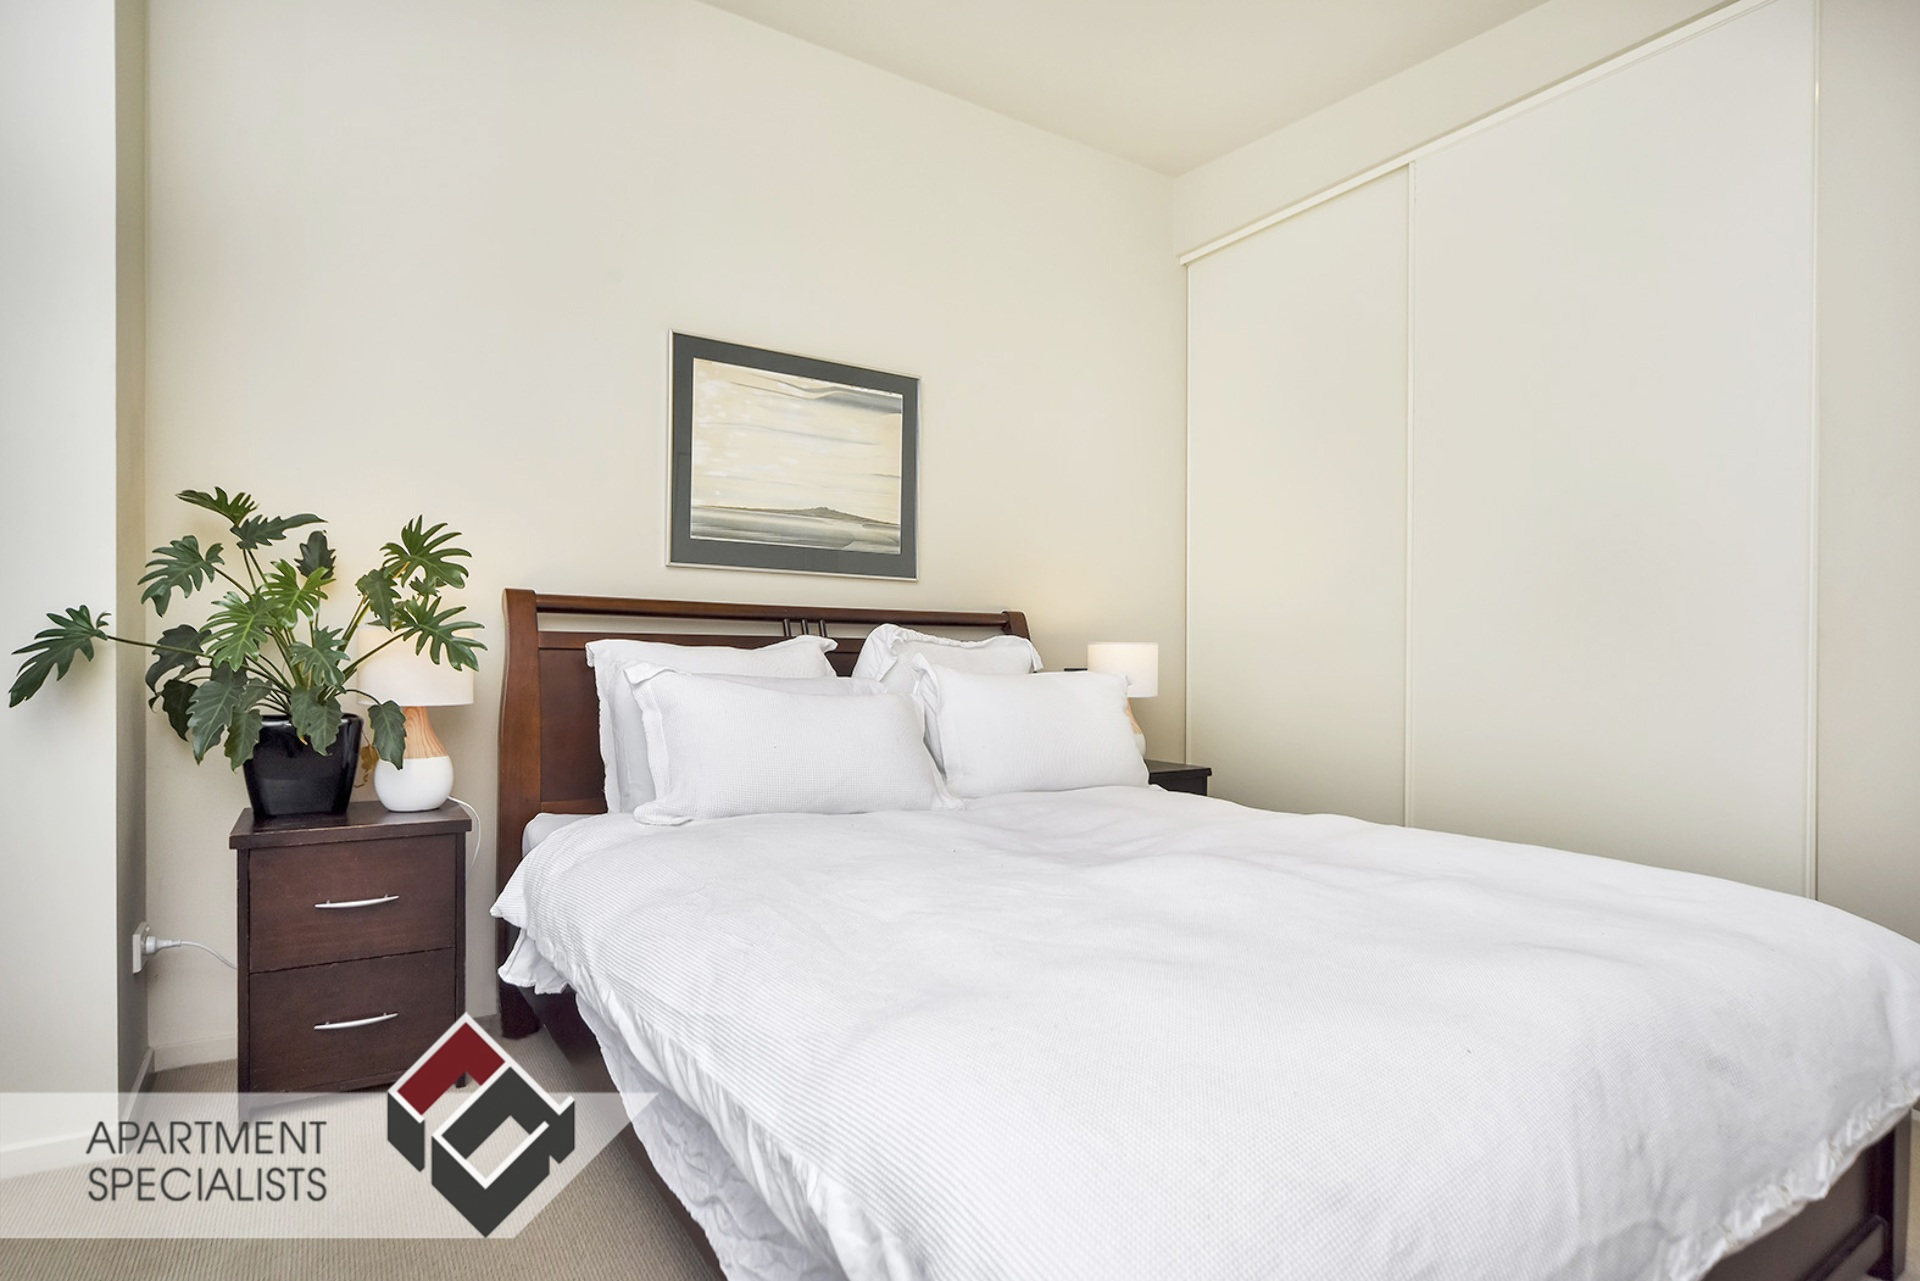 4 | 21 Hunters Park Drive, Three Kings | Apartment Specialists